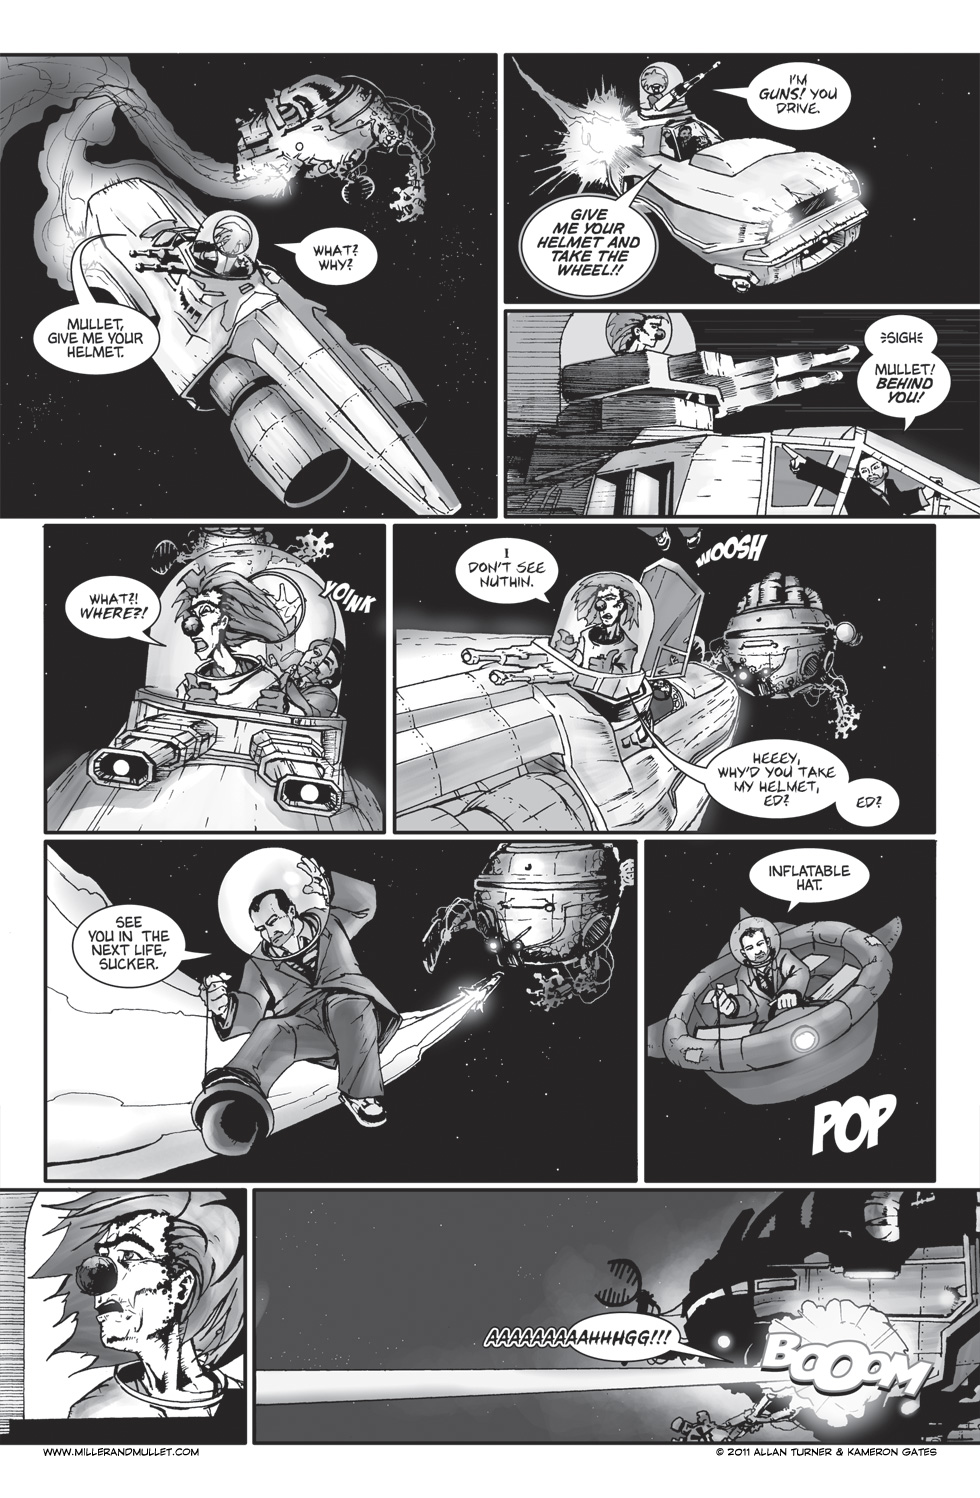 Miller & Mullet™ in Space – Page 19